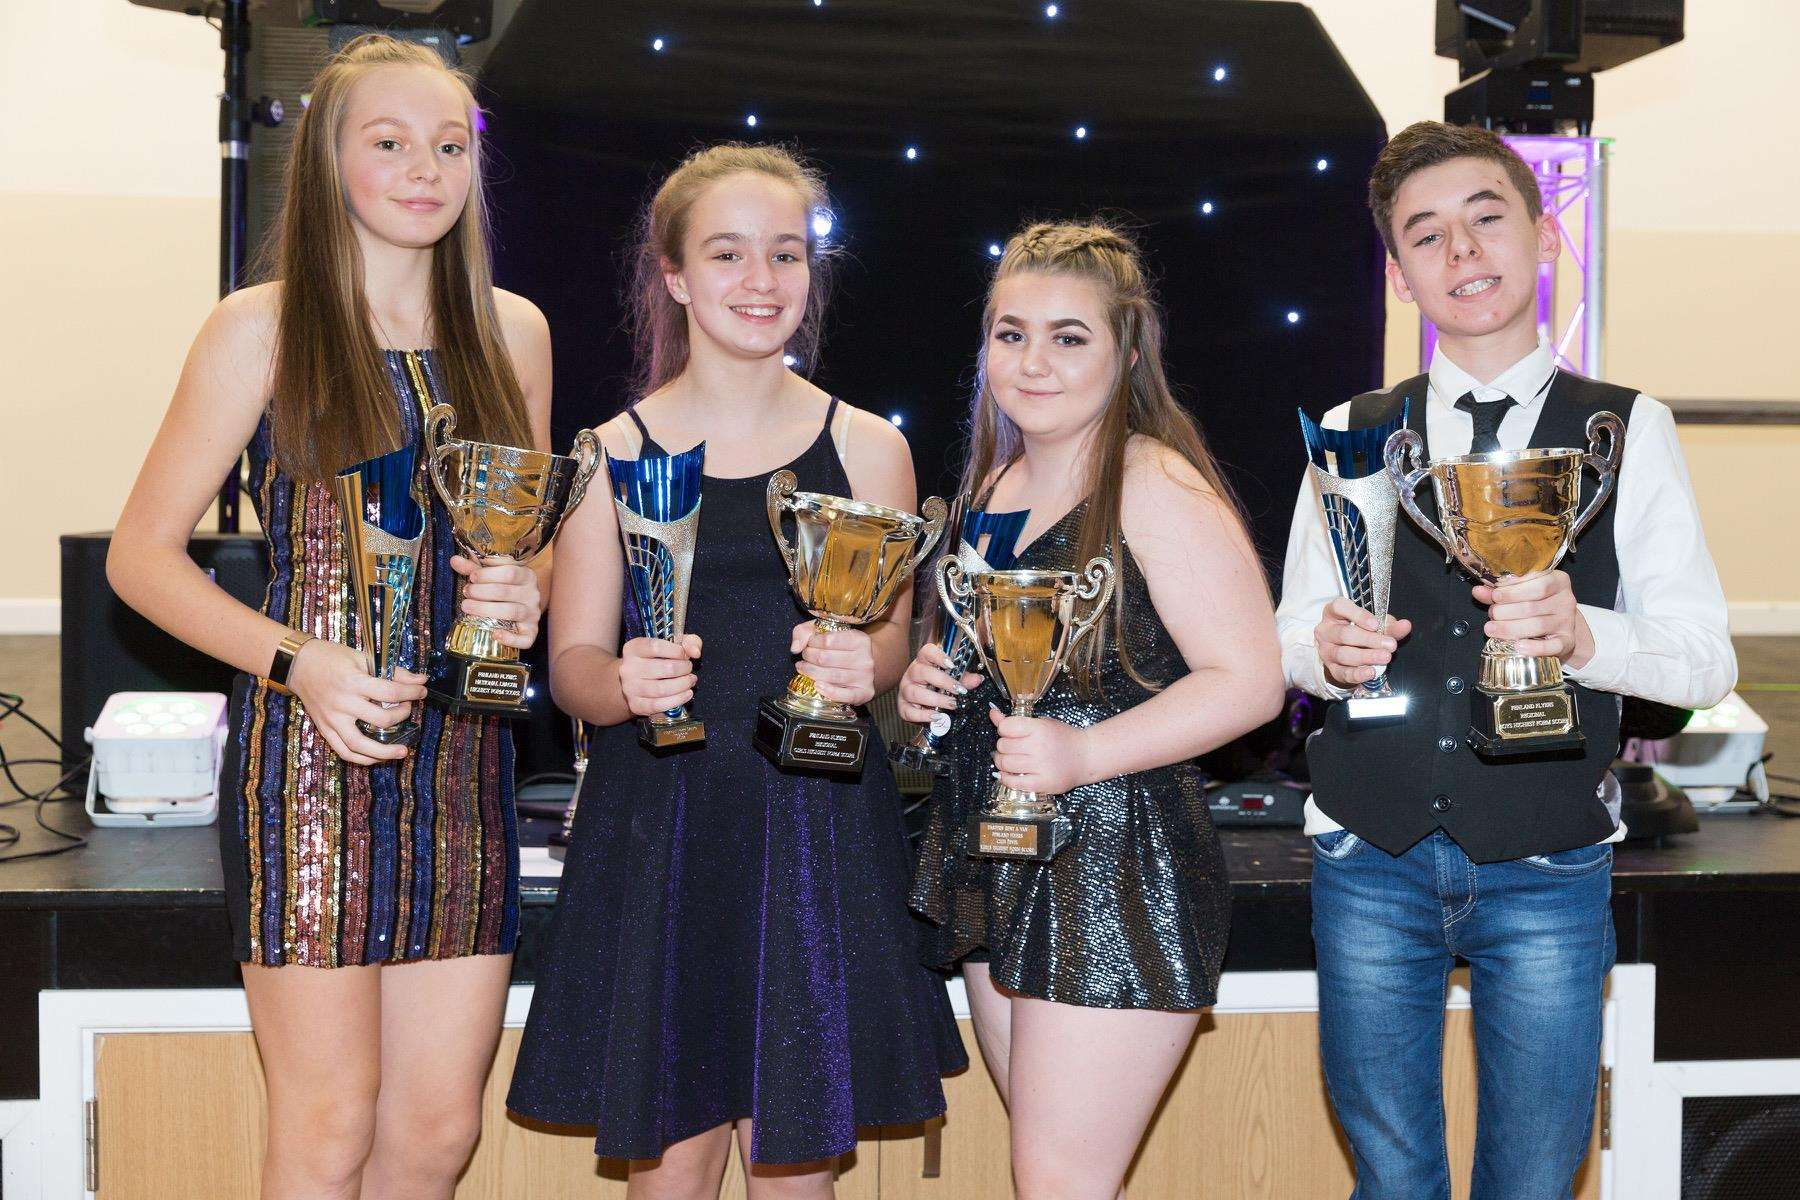 Fenland Flyers presentation evening....Highest Competition From Score. (6200320)